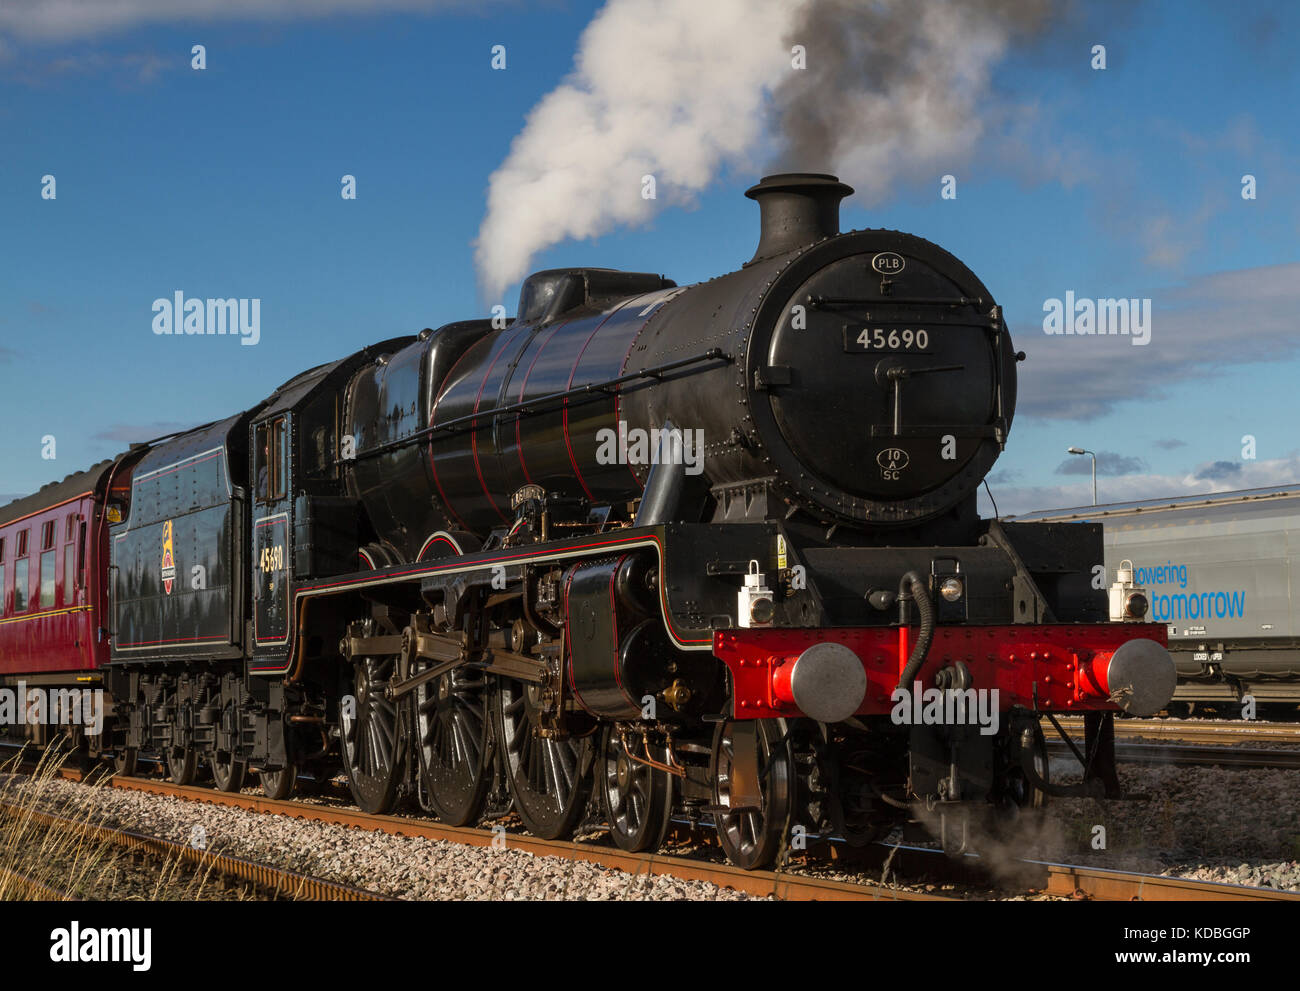 Leander 45690, in BR late 1940's lined black livery, on The Coast To Coast Express at Milford Loop, North Yorkshire, - Stock Image